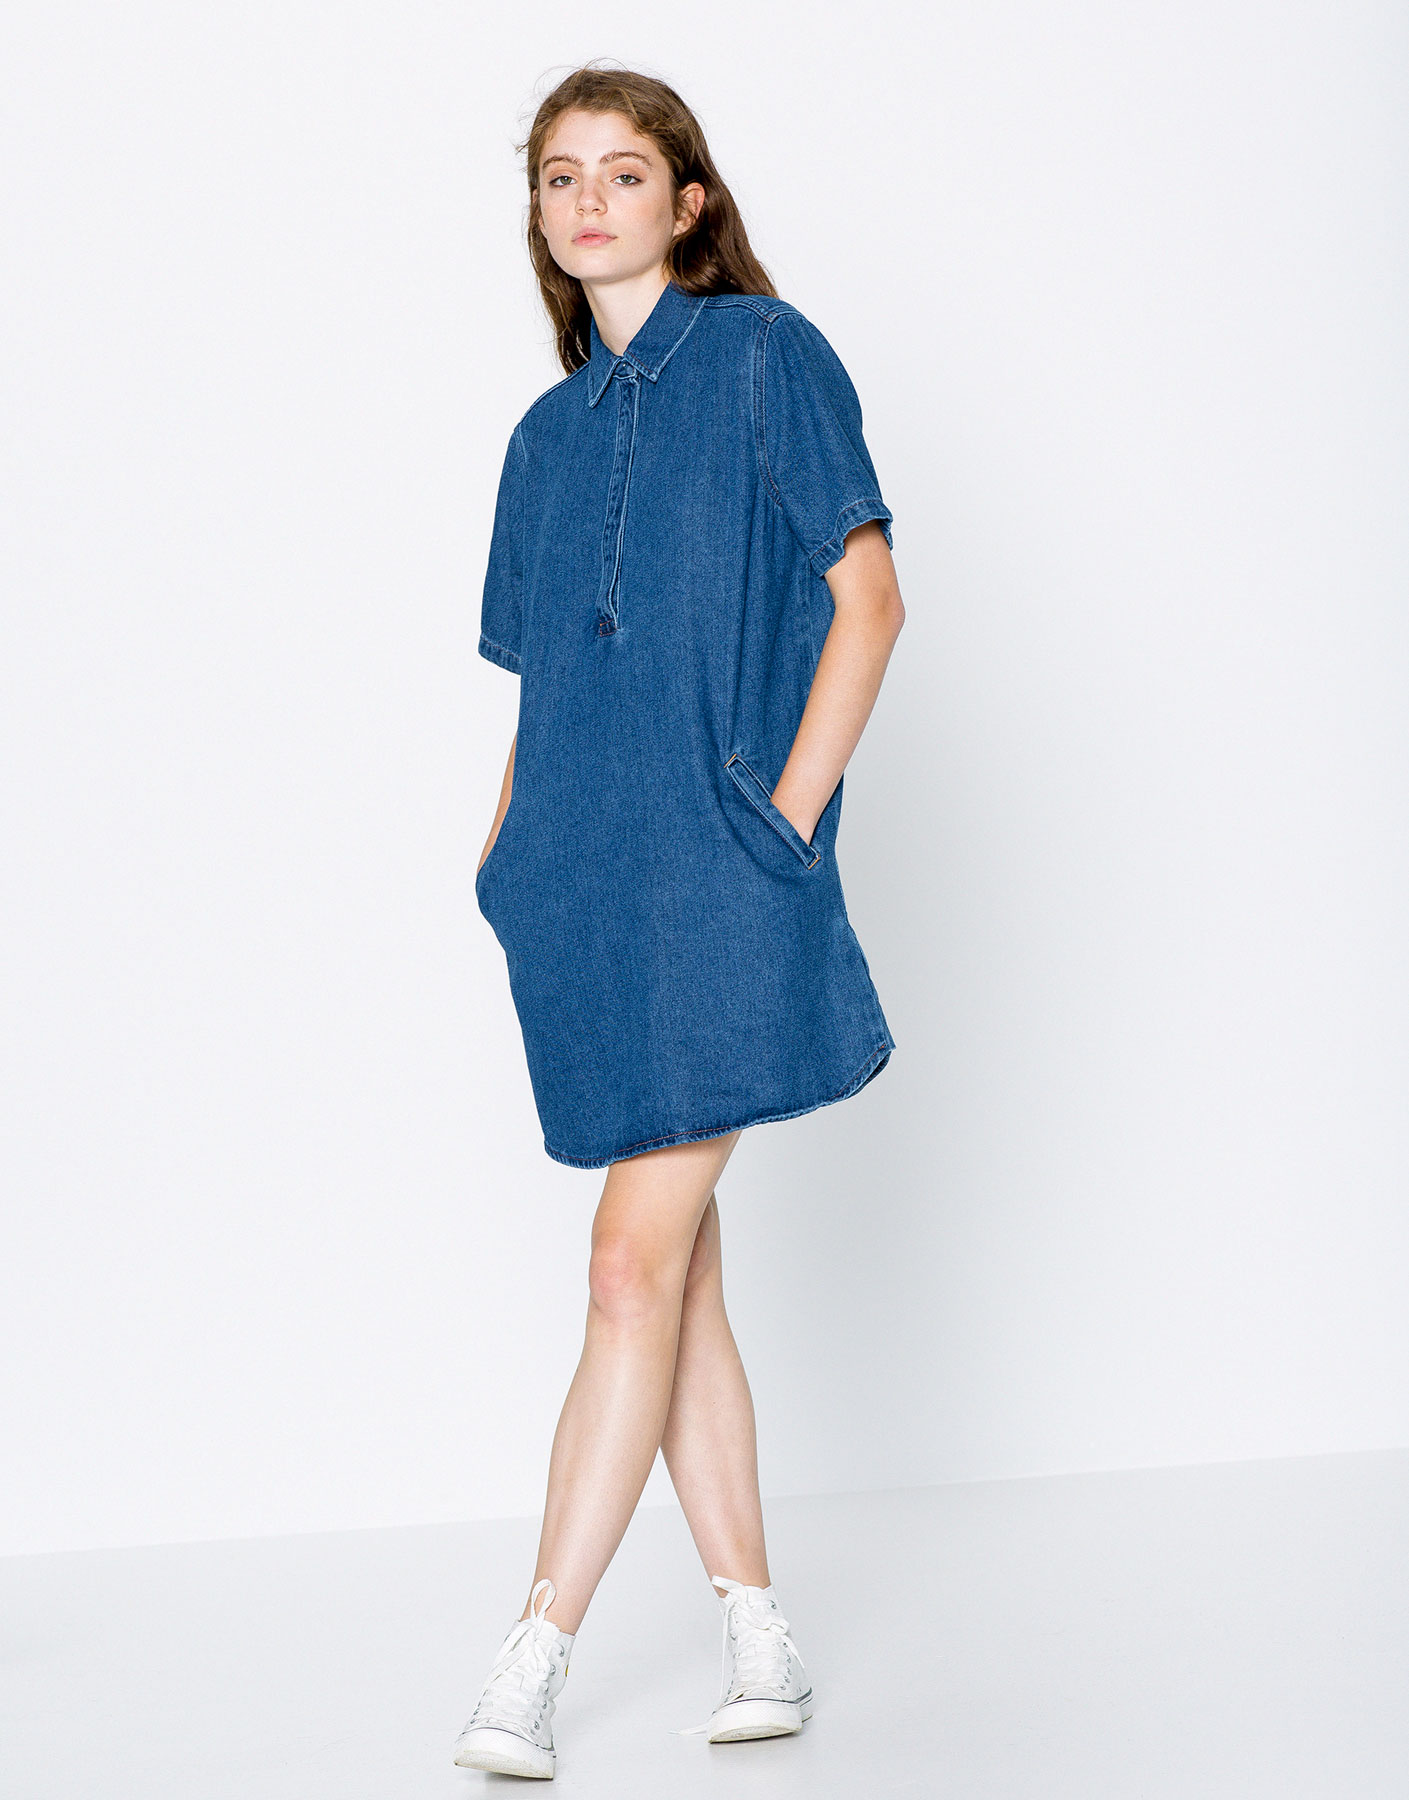 Vestit denim coll camiser